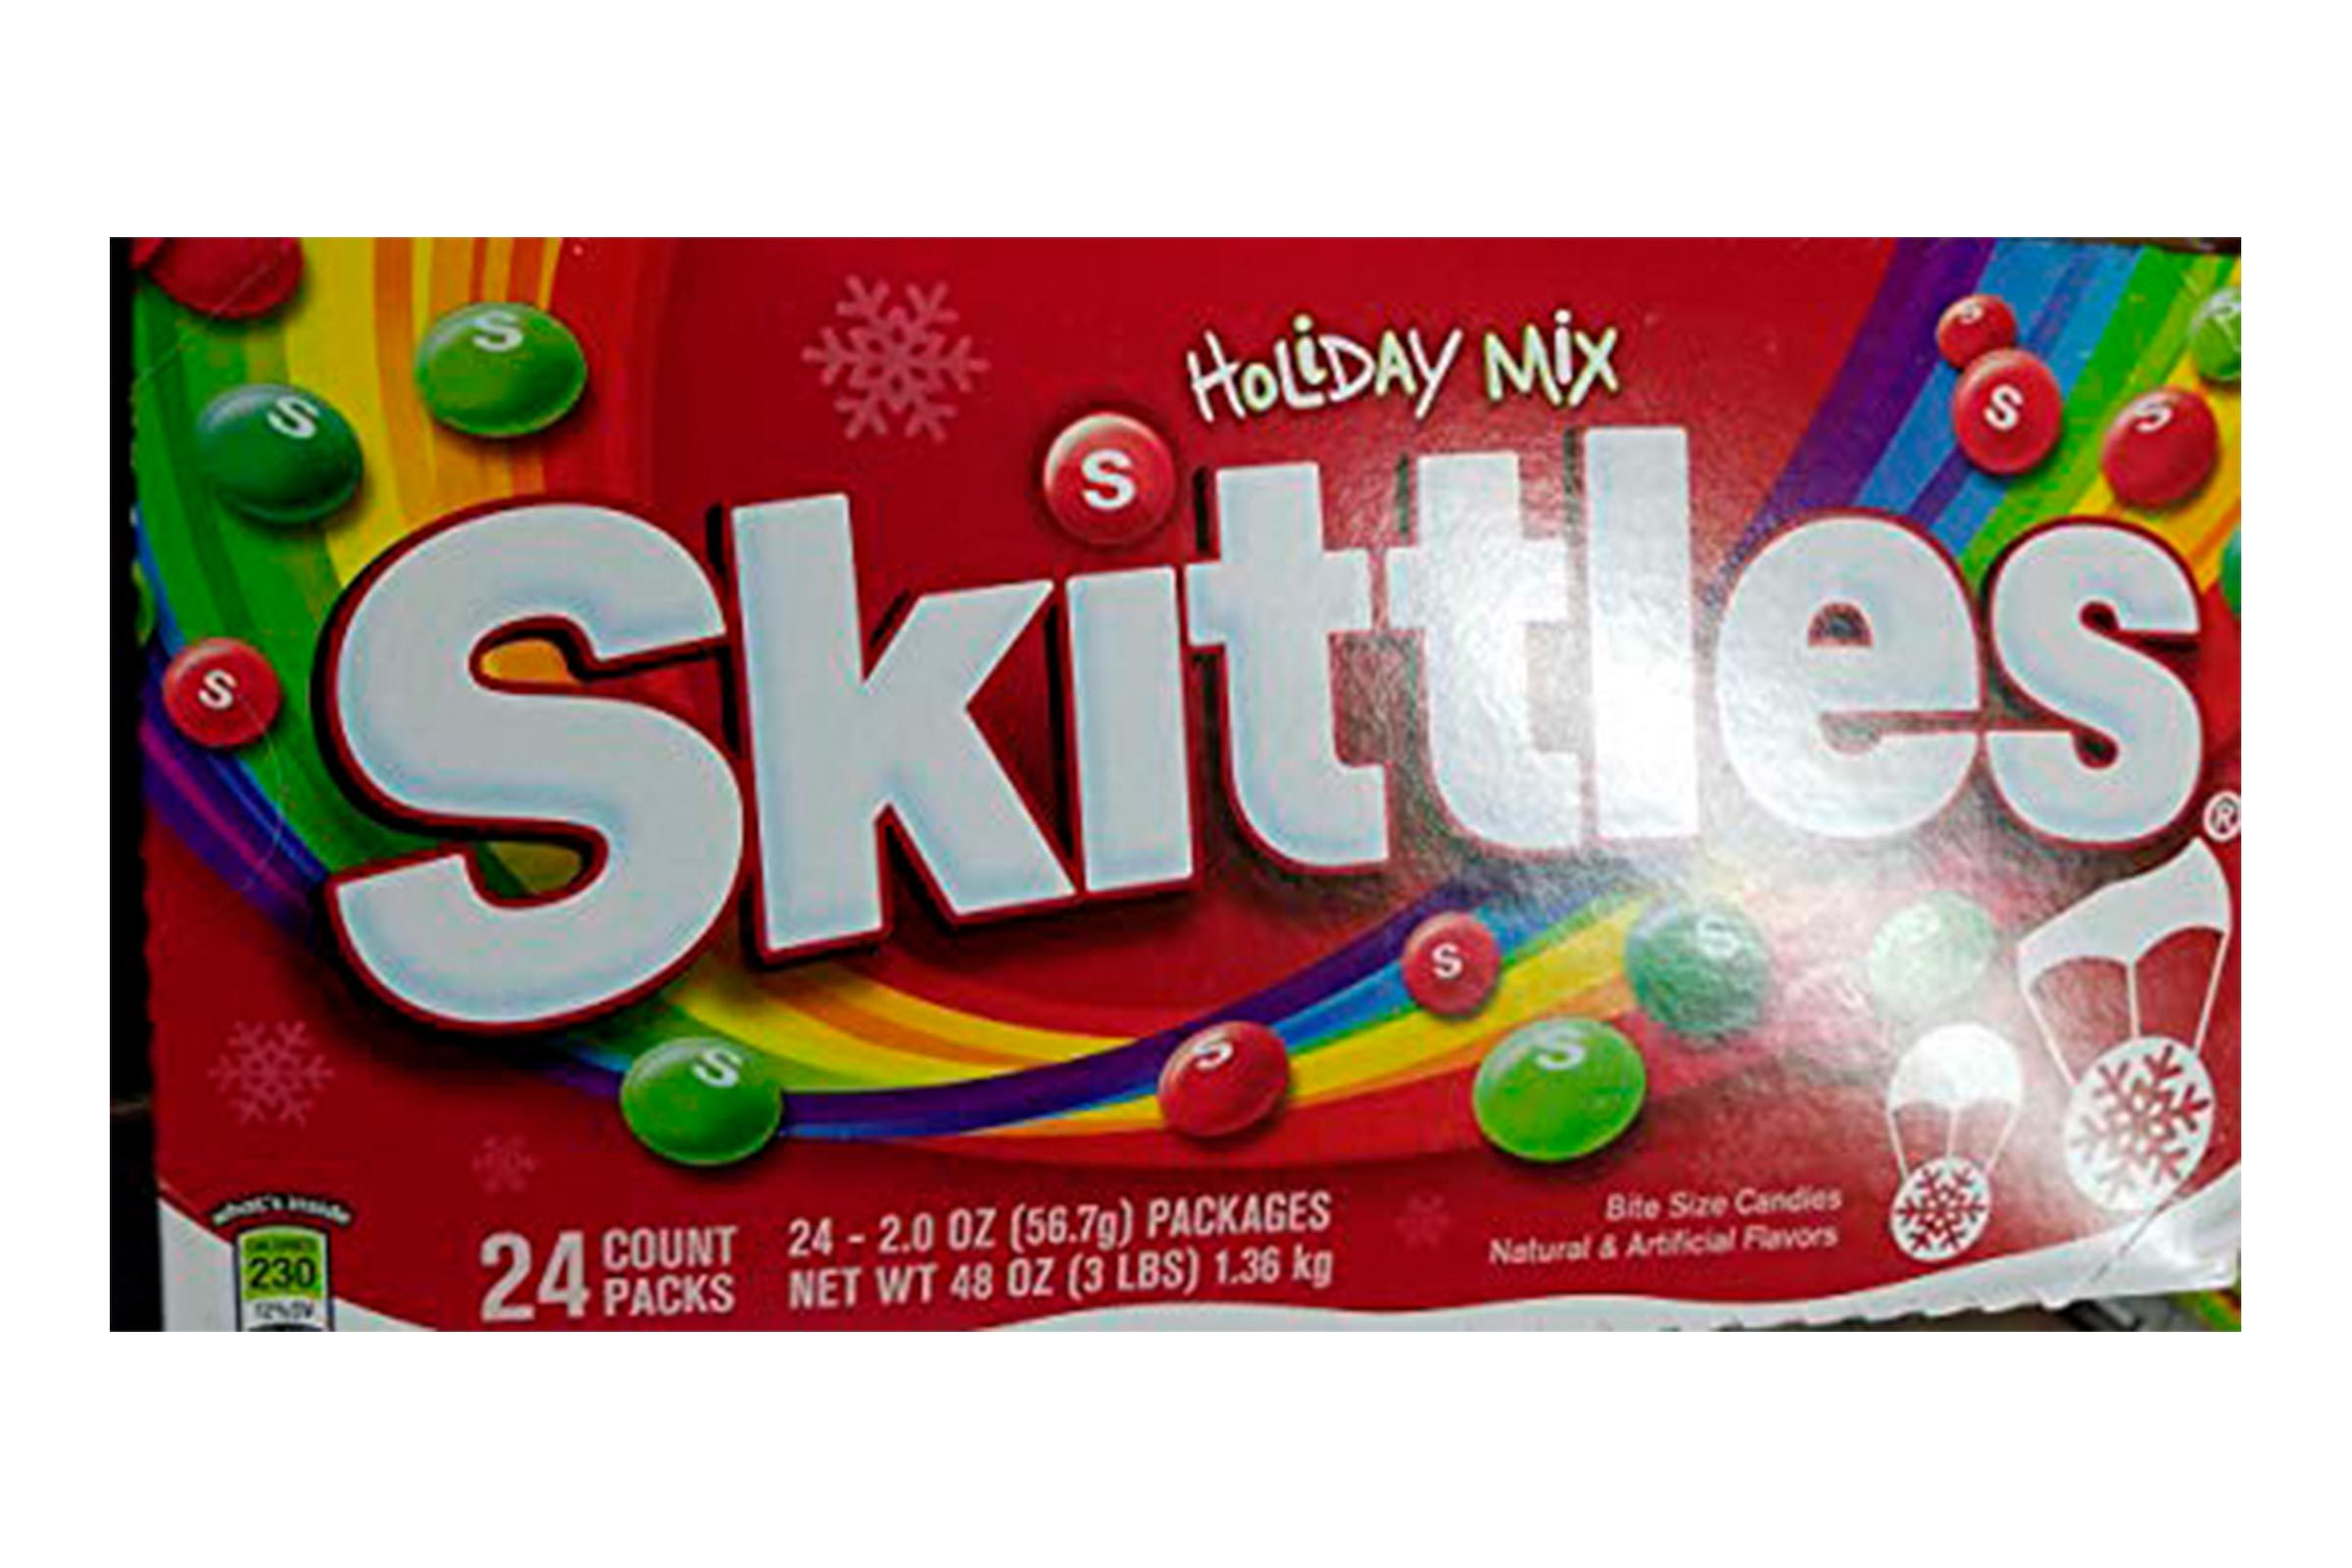 Skittles Holiday Mix